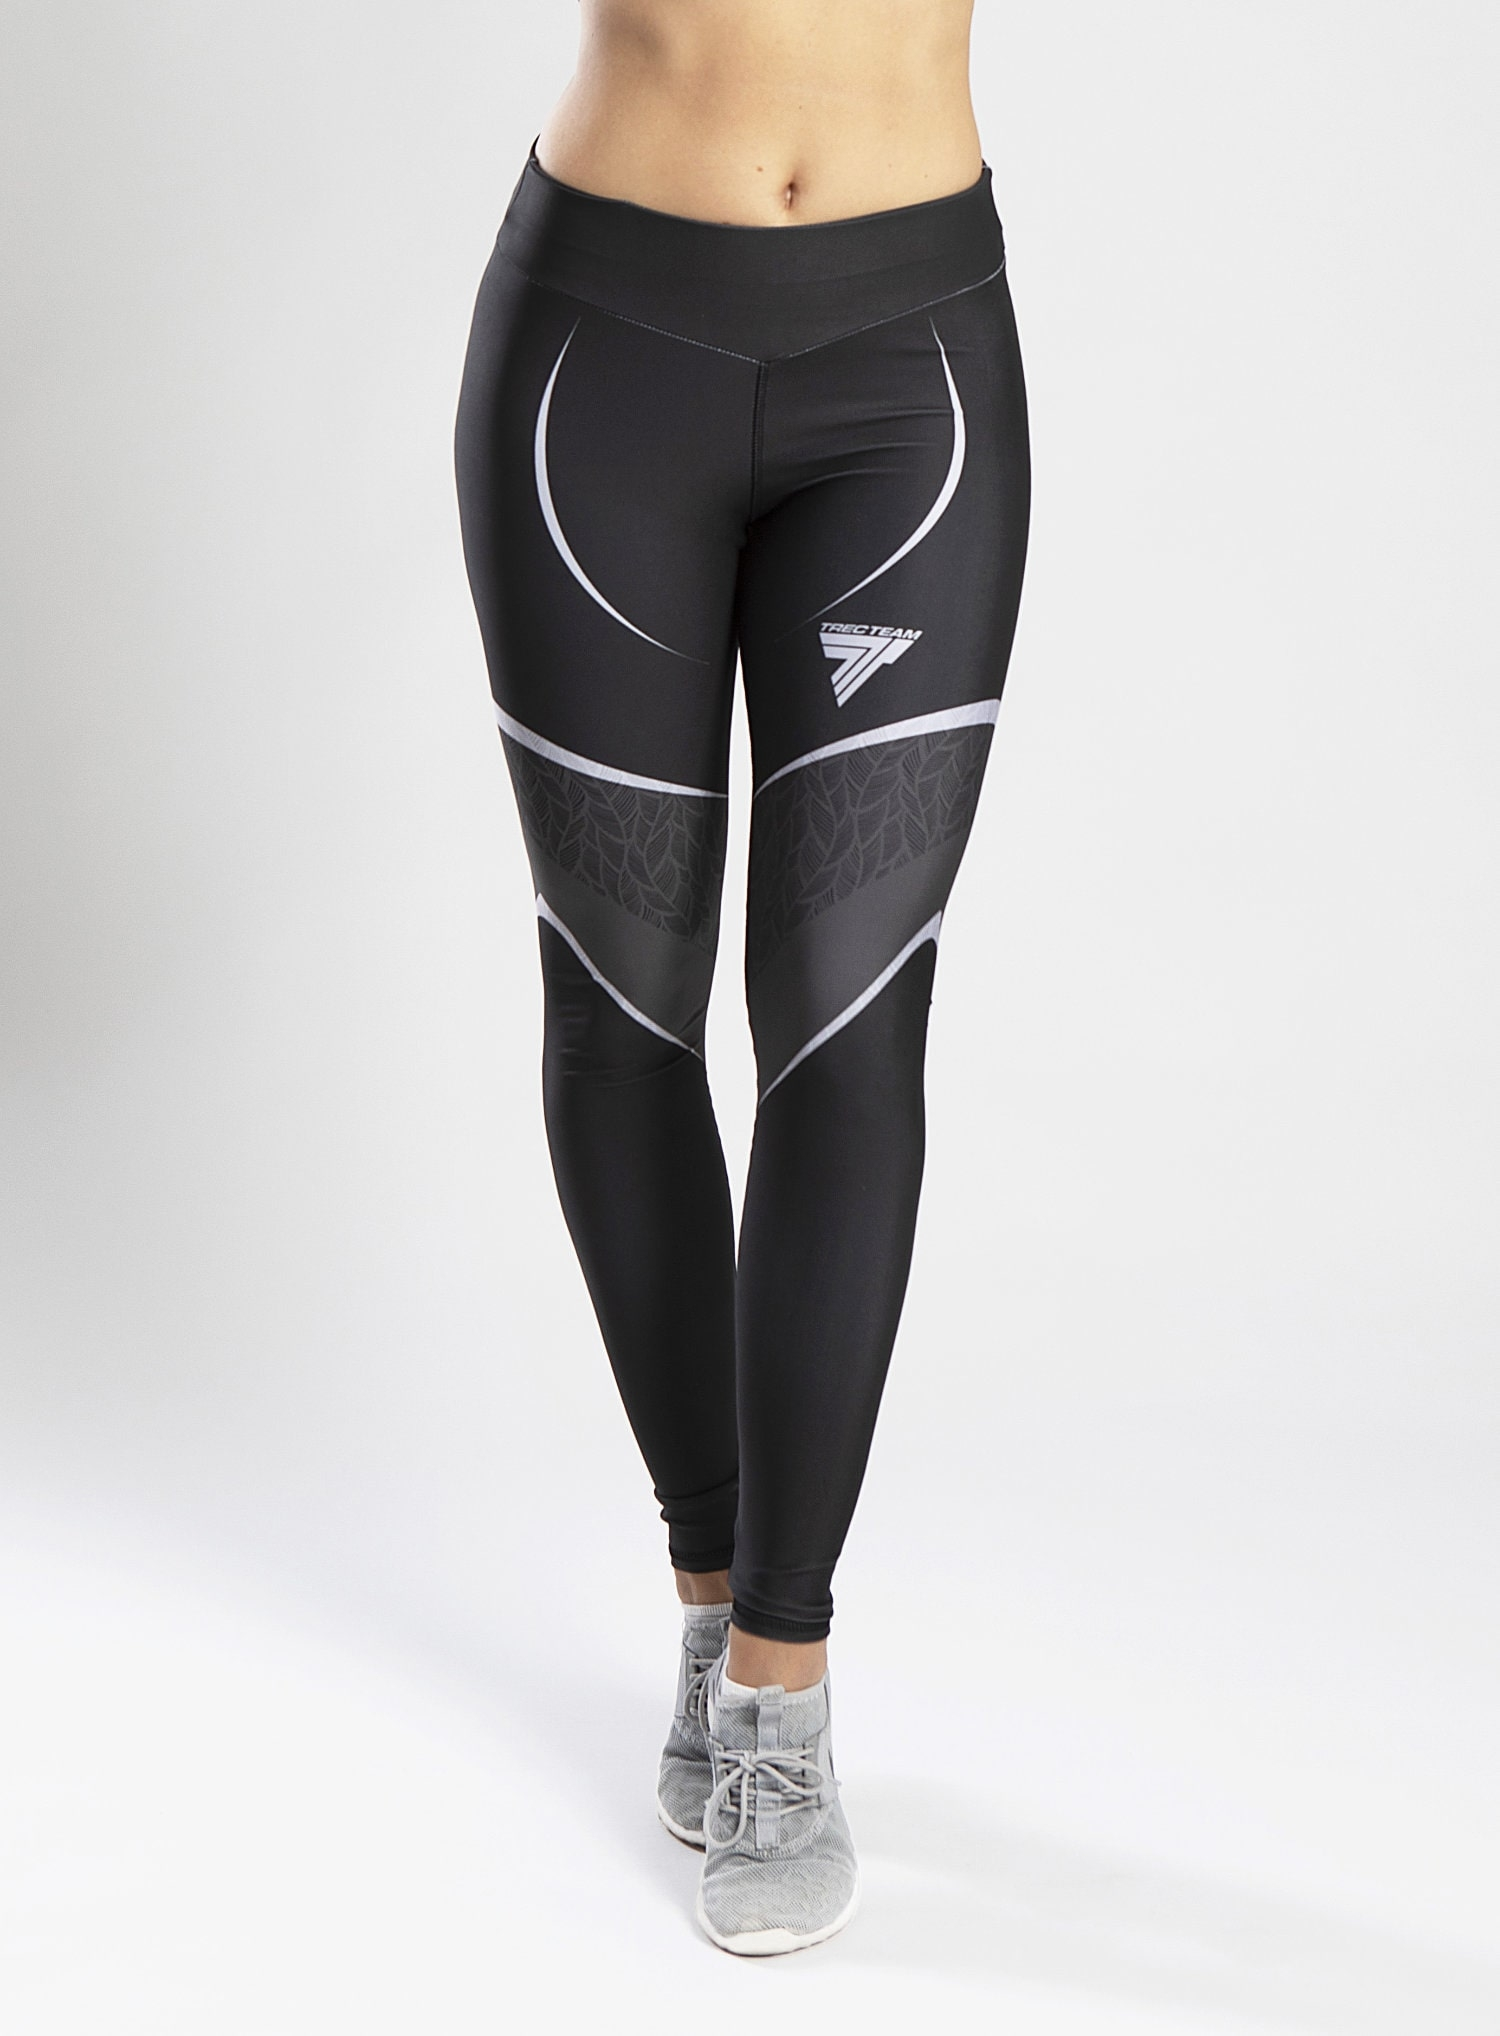 None LEGGINGS TRECGIRL 35 OPTI BLACK GREY Glowne